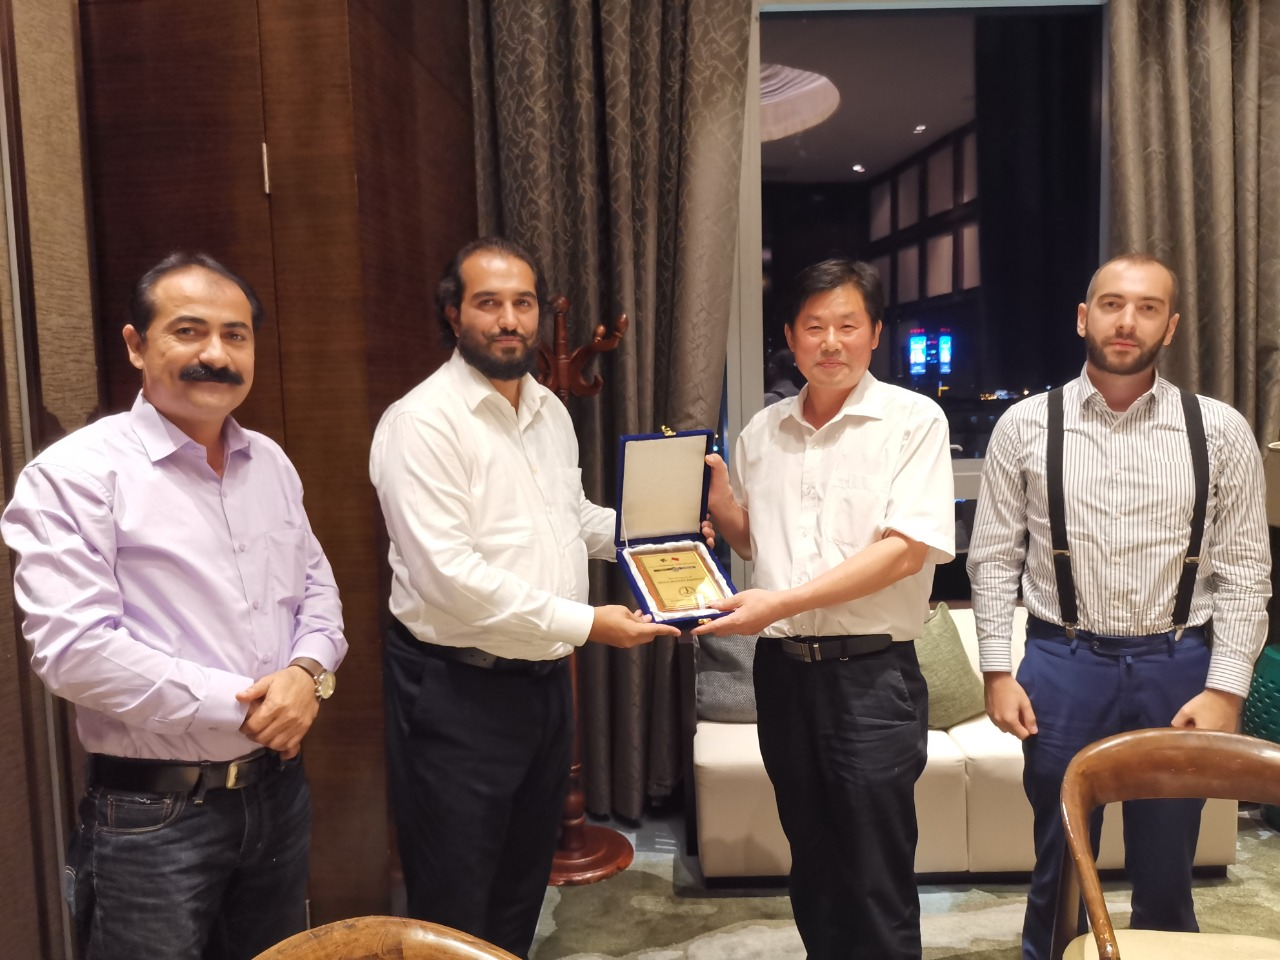 Mr. Nawabzada Zaheer Barakzai - Chairman Mega Movers Pakistan Presenting souvenir to Mr Lu Lin.